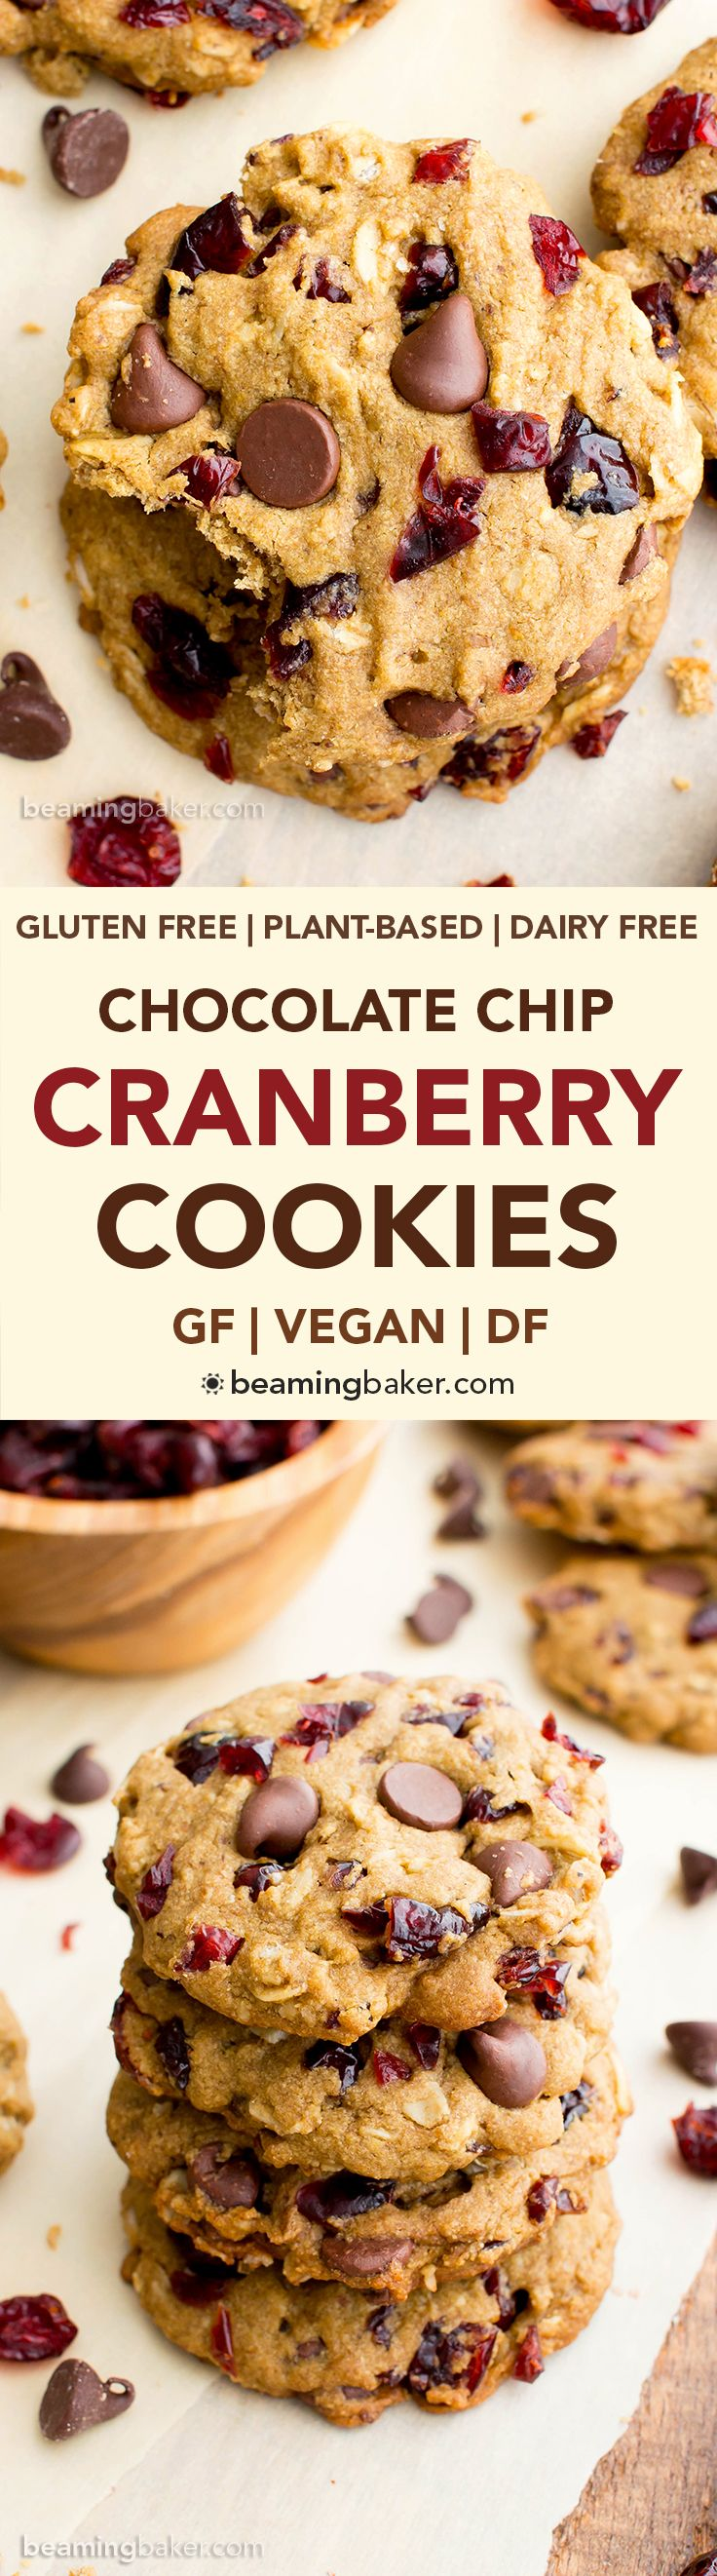 8292 best All Things Chocolate images on Pinterest | Vegan ...